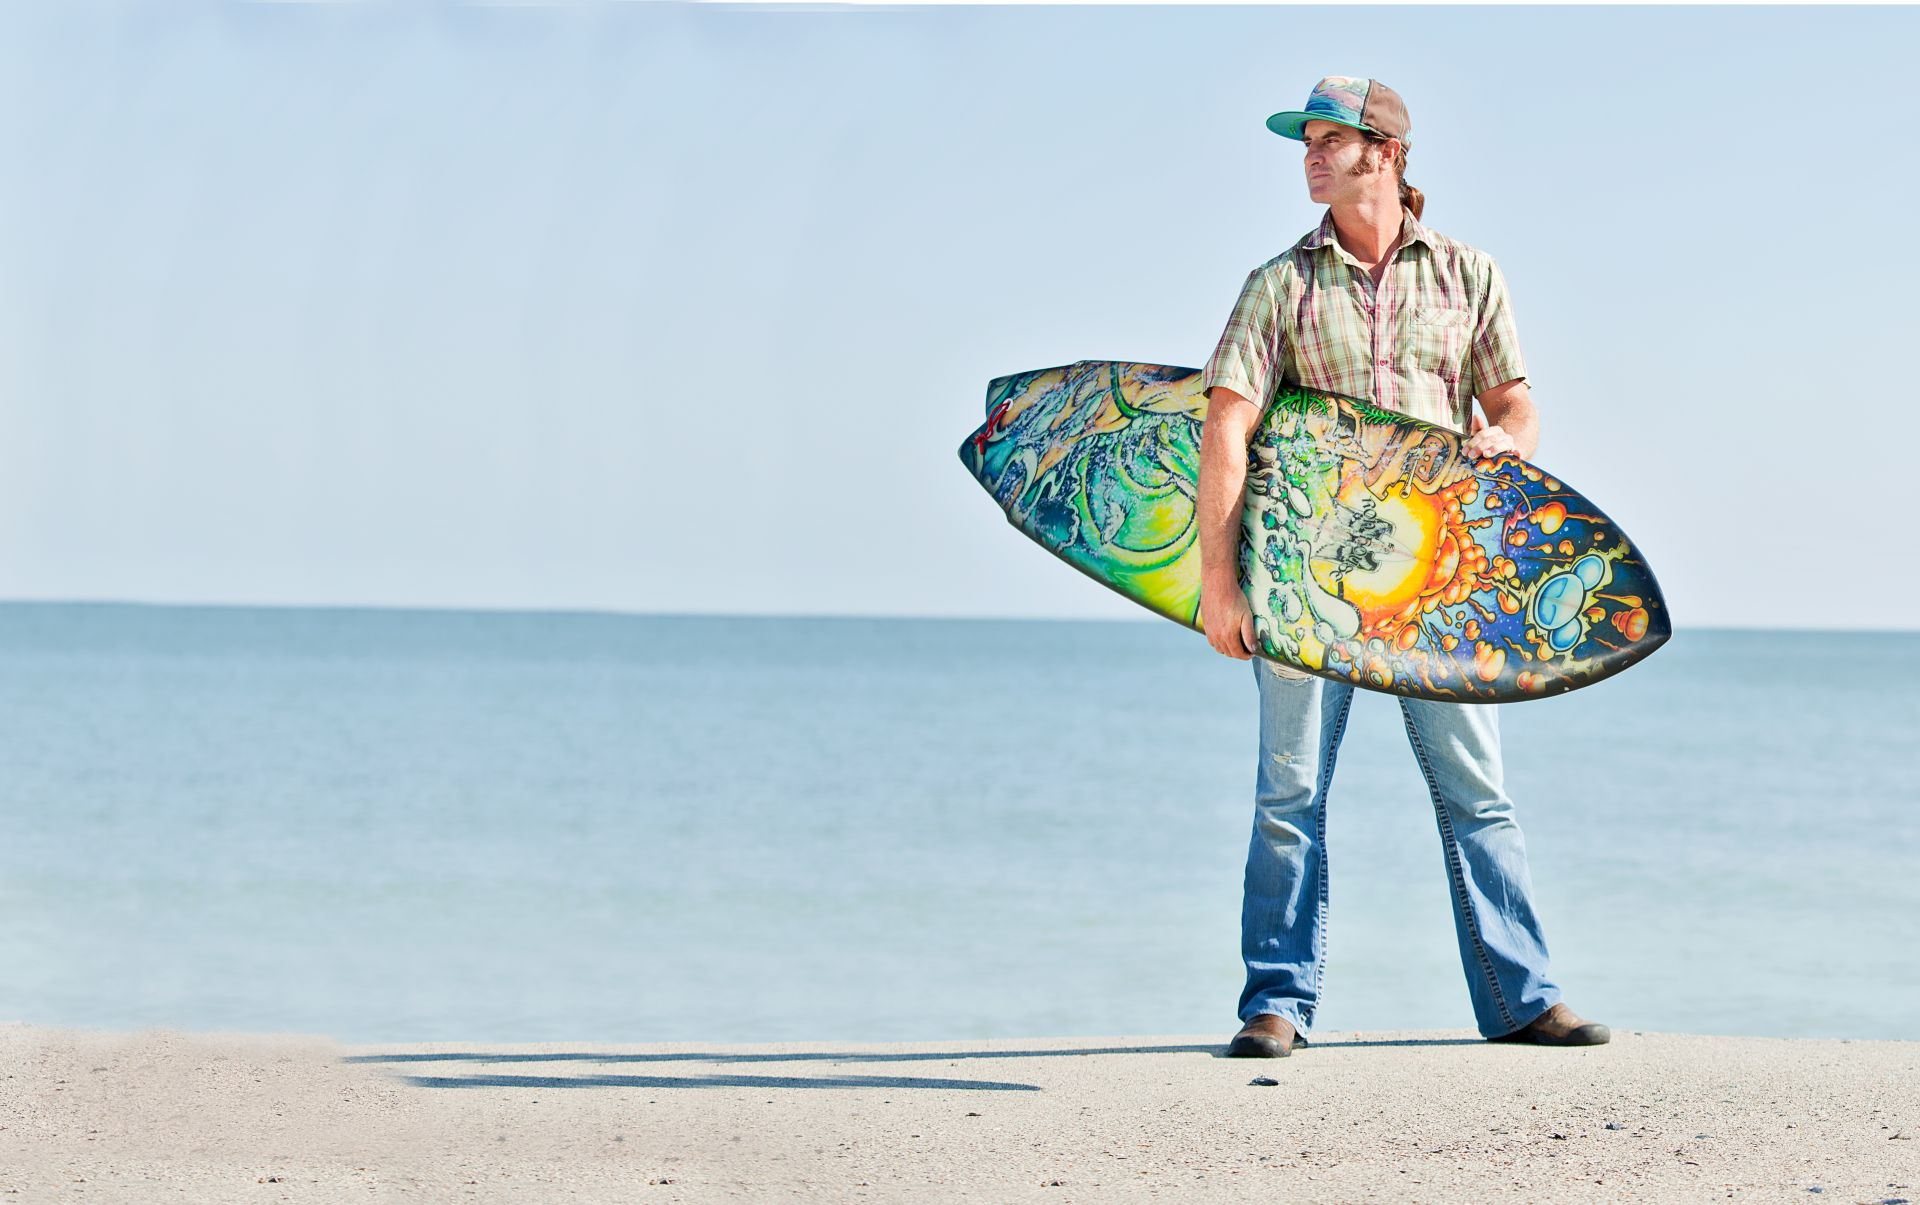 Surf Artist Drew Brophy holding his painted Surfbo